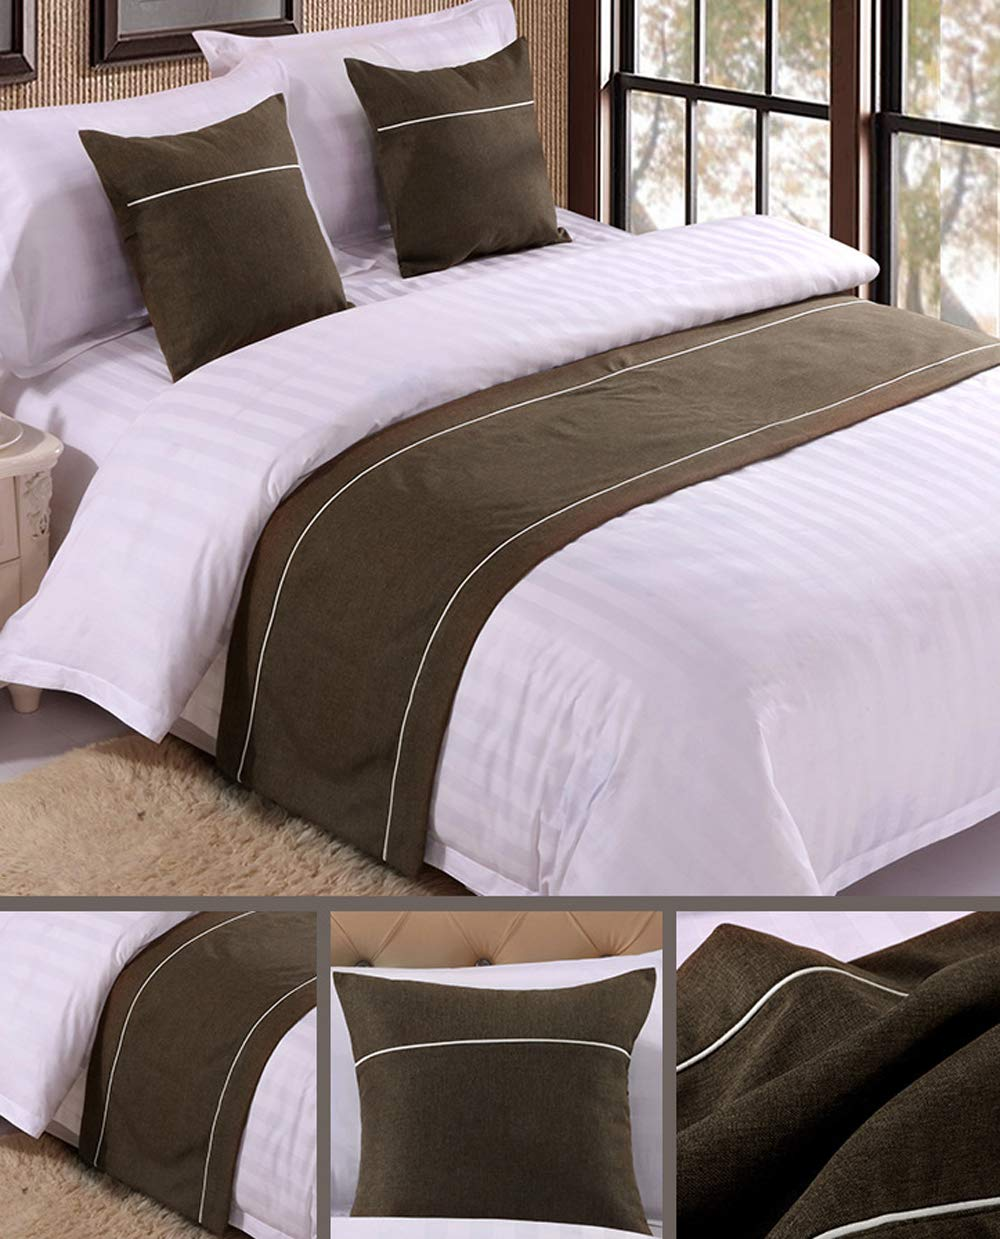 Mengersi Solid Color Soft No Fading Modern Bed Runner Bedding Scarf Protection for Bedroom Hotel Wedding Room (King, Coffee)